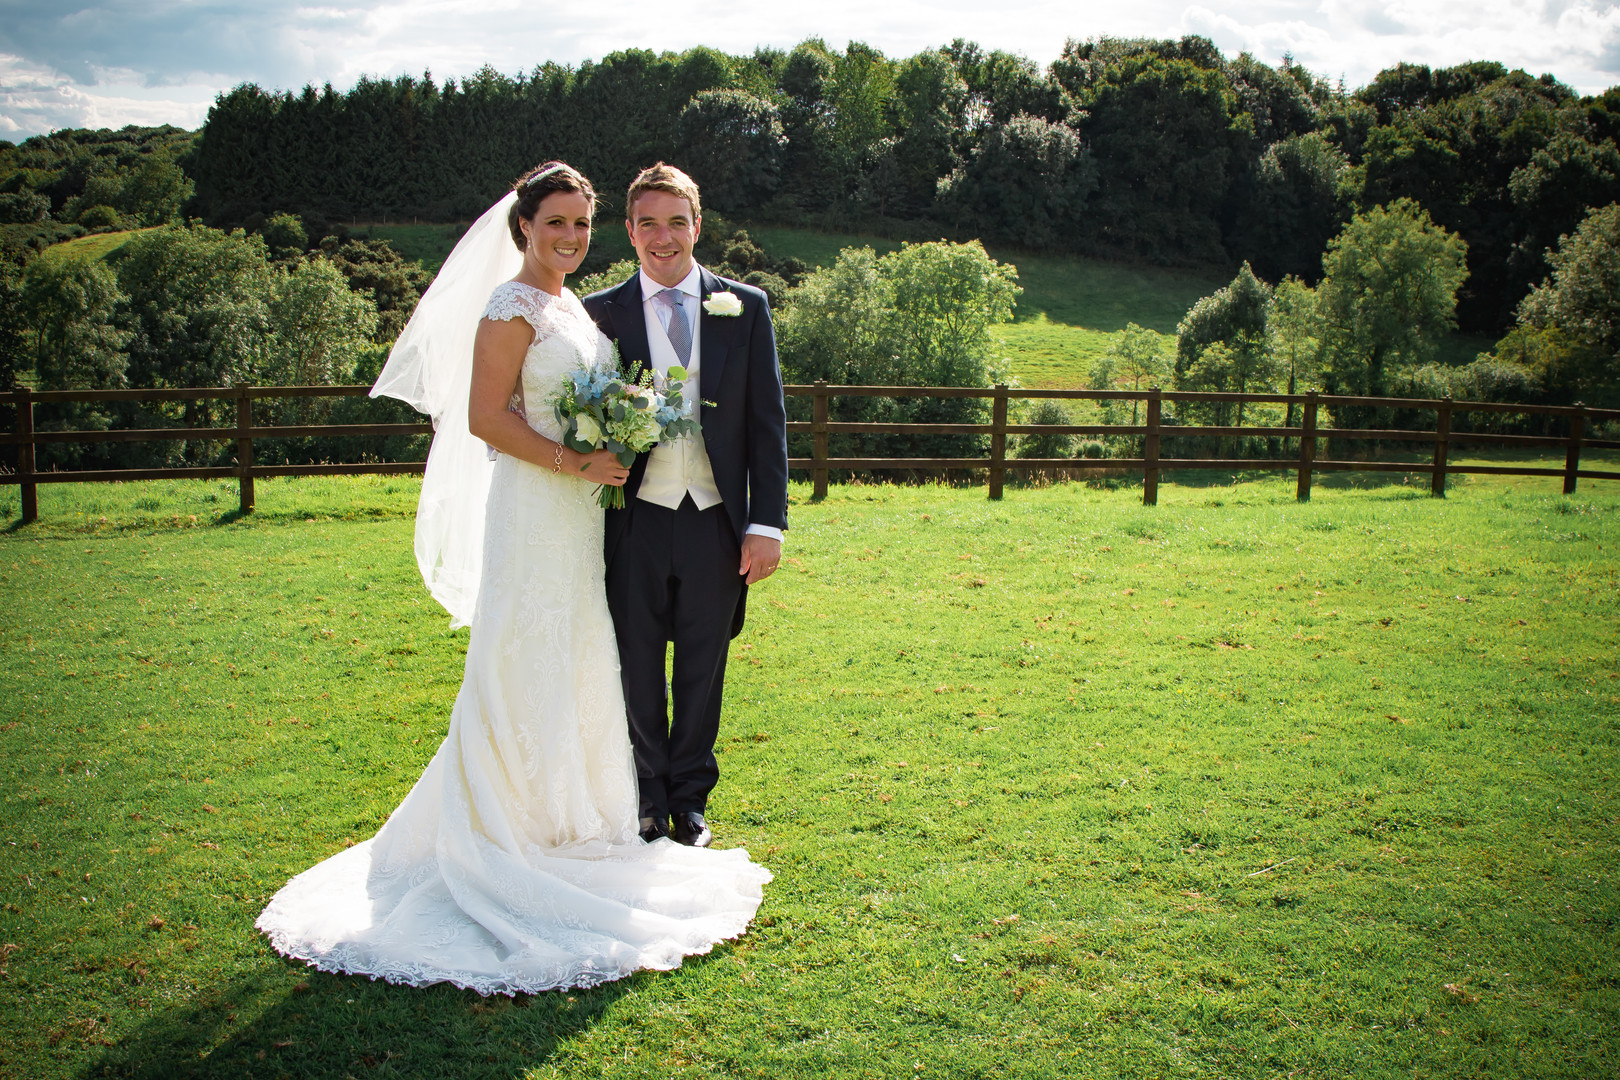 Sophie_Tink_Wedding_Couple_11.jpg